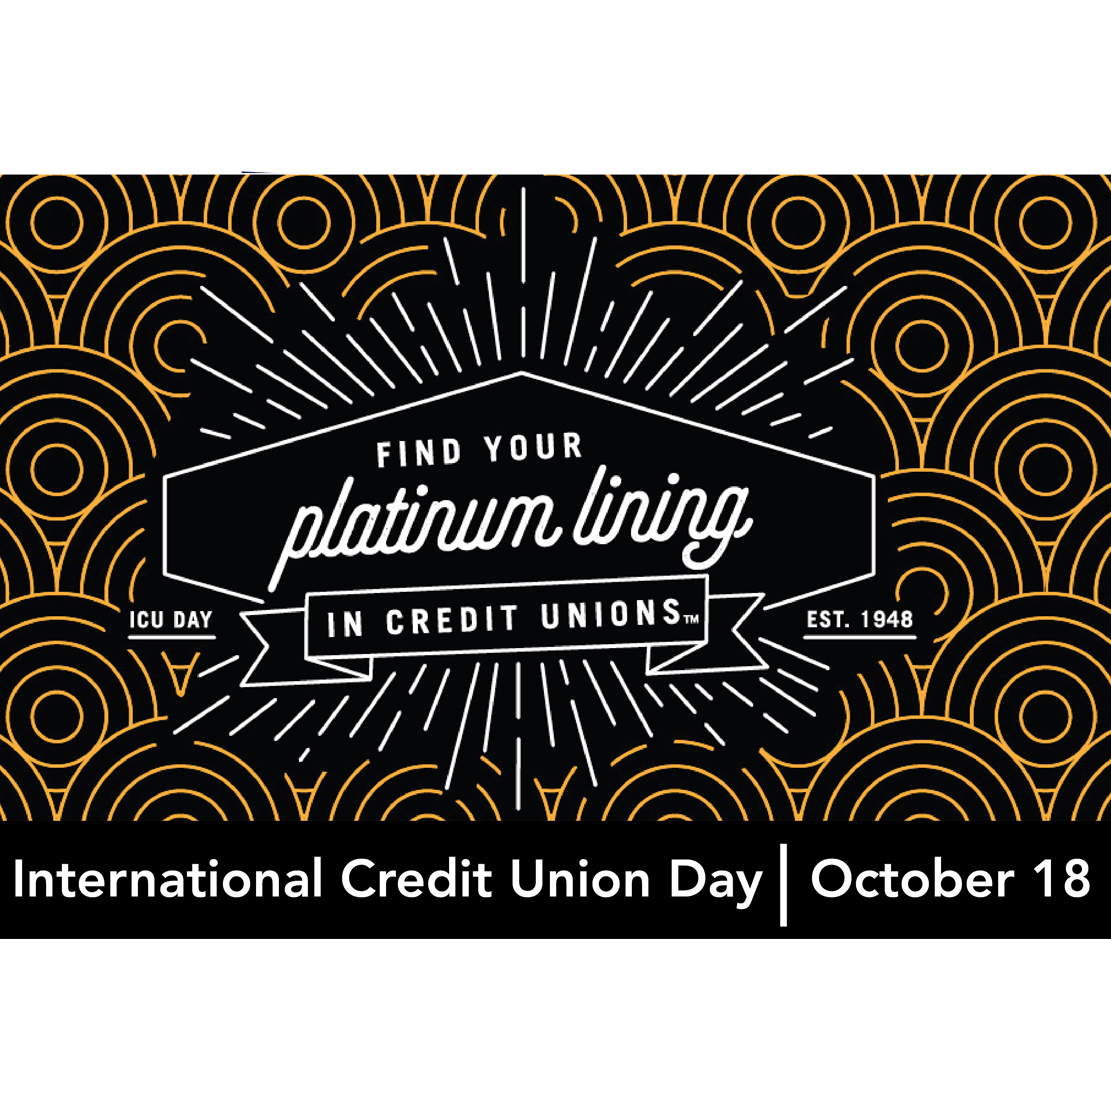 internaitonal credit union day 2018 - platinum linings